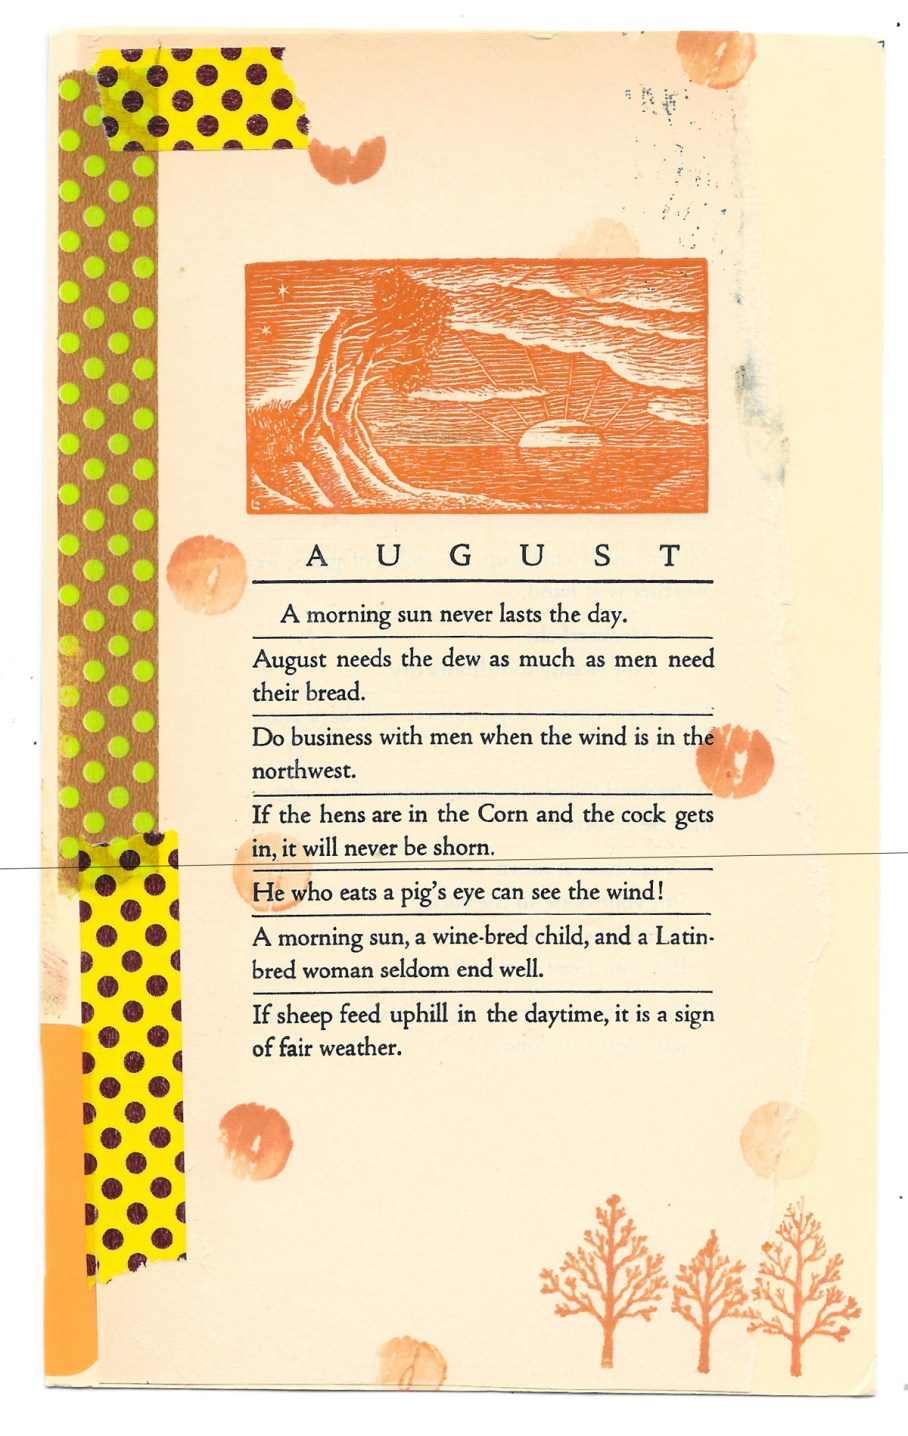 postcard with poem about August and trees